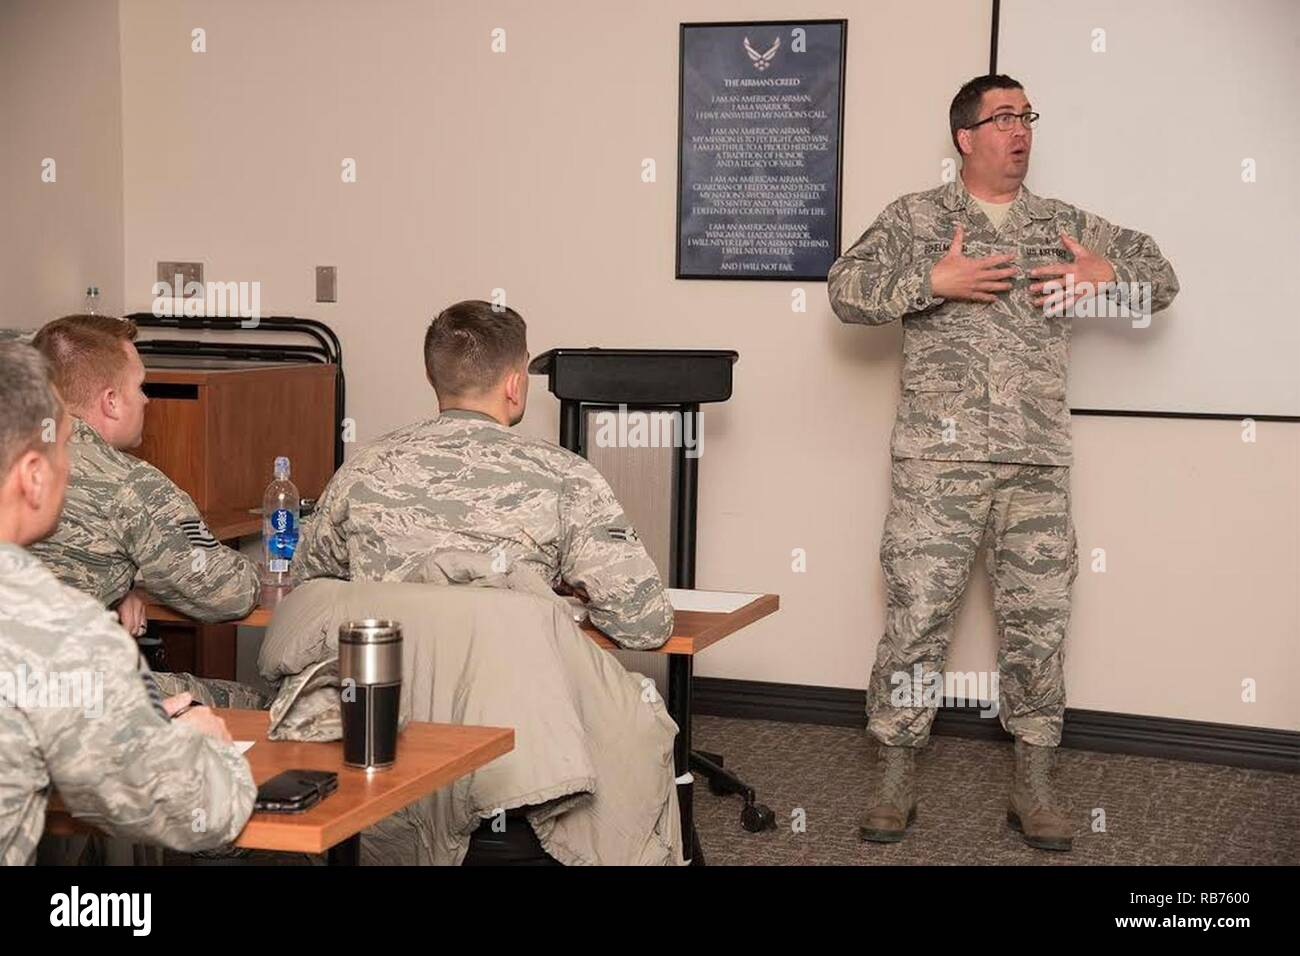 PETERSON AIR FORCE BASE, Colo. - Tech. Sgt. Thomas Echlemeyer, 21st Aerospace Medicine Squadron Bioenvironmental Engineering NCO in charge and 5/6 Club president, compares Generation X and millennial characteristics during the Millennial Leadership Course on Dec. 9, 2016, at the Professional Development Center, Peterson Air Force Base, Colo. The course was designed by Peterson's 5/6 Club as a facilitated discussion group to provide guidance on how to lead millennial Airmen and new generations entering the Air Force. - Stock Image